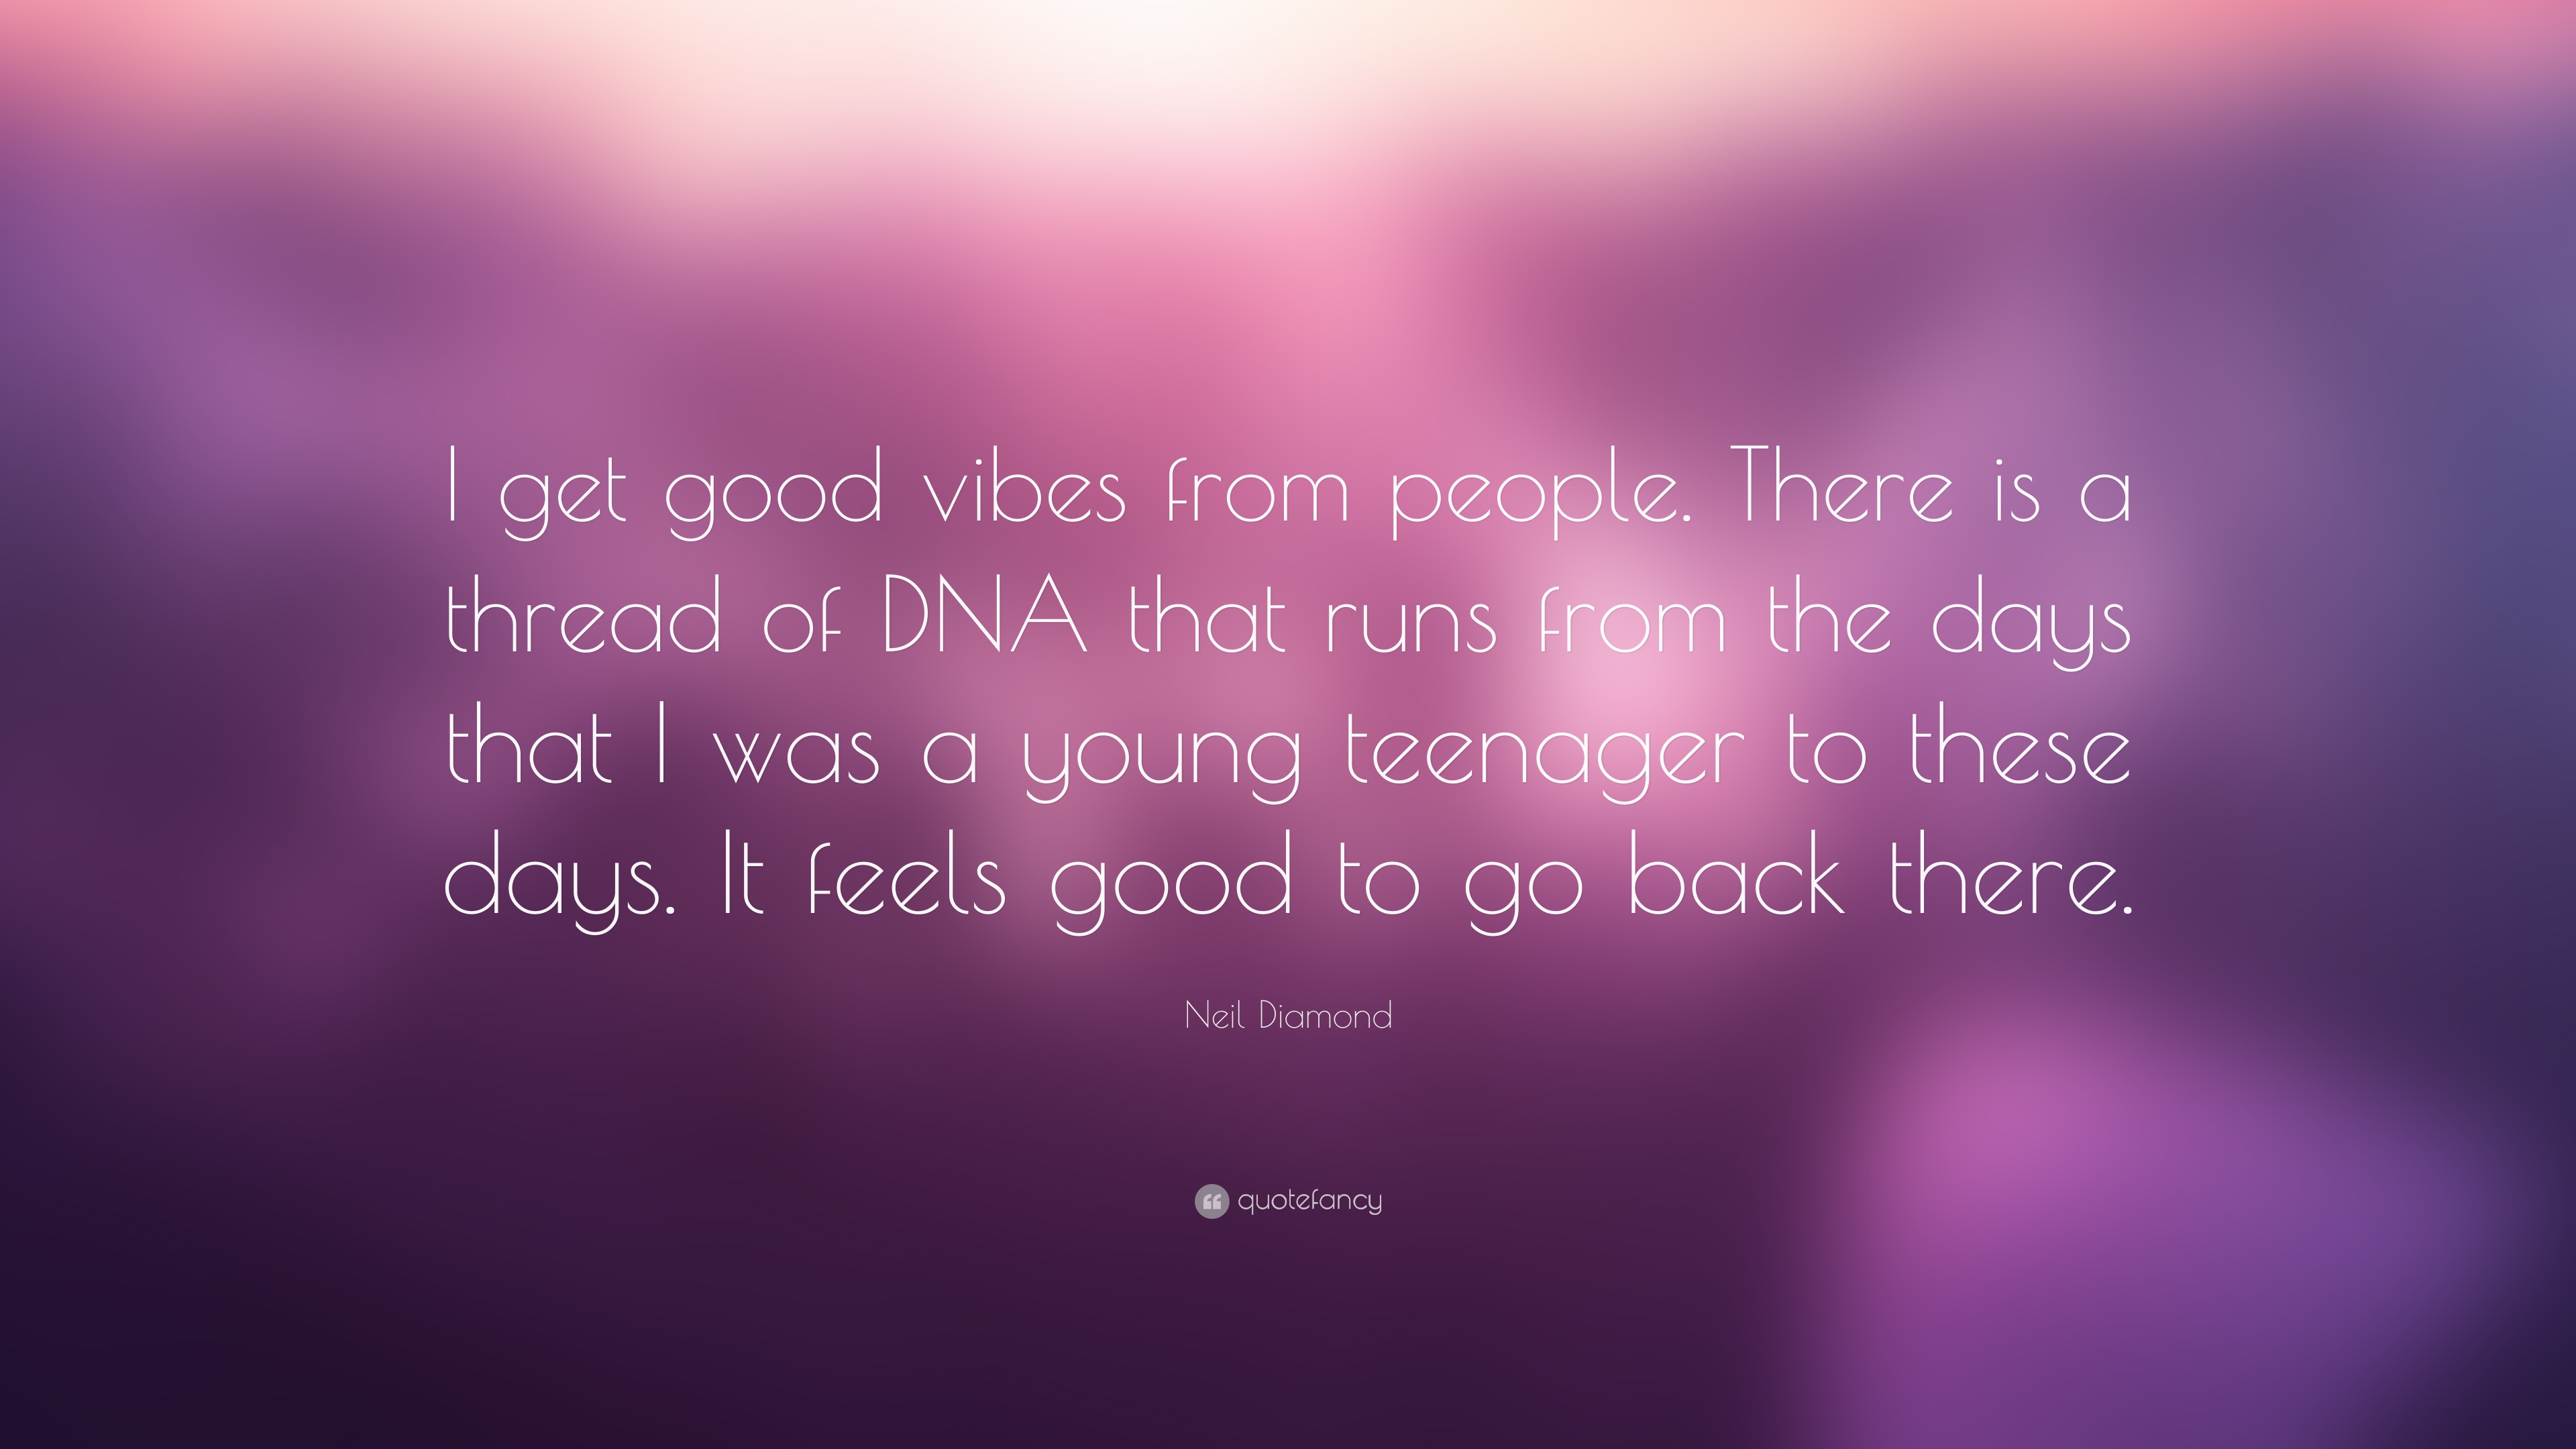 Good Vibes Quotes | Neil Diamond Quote I Get Good Vibes From People There Is A Thread